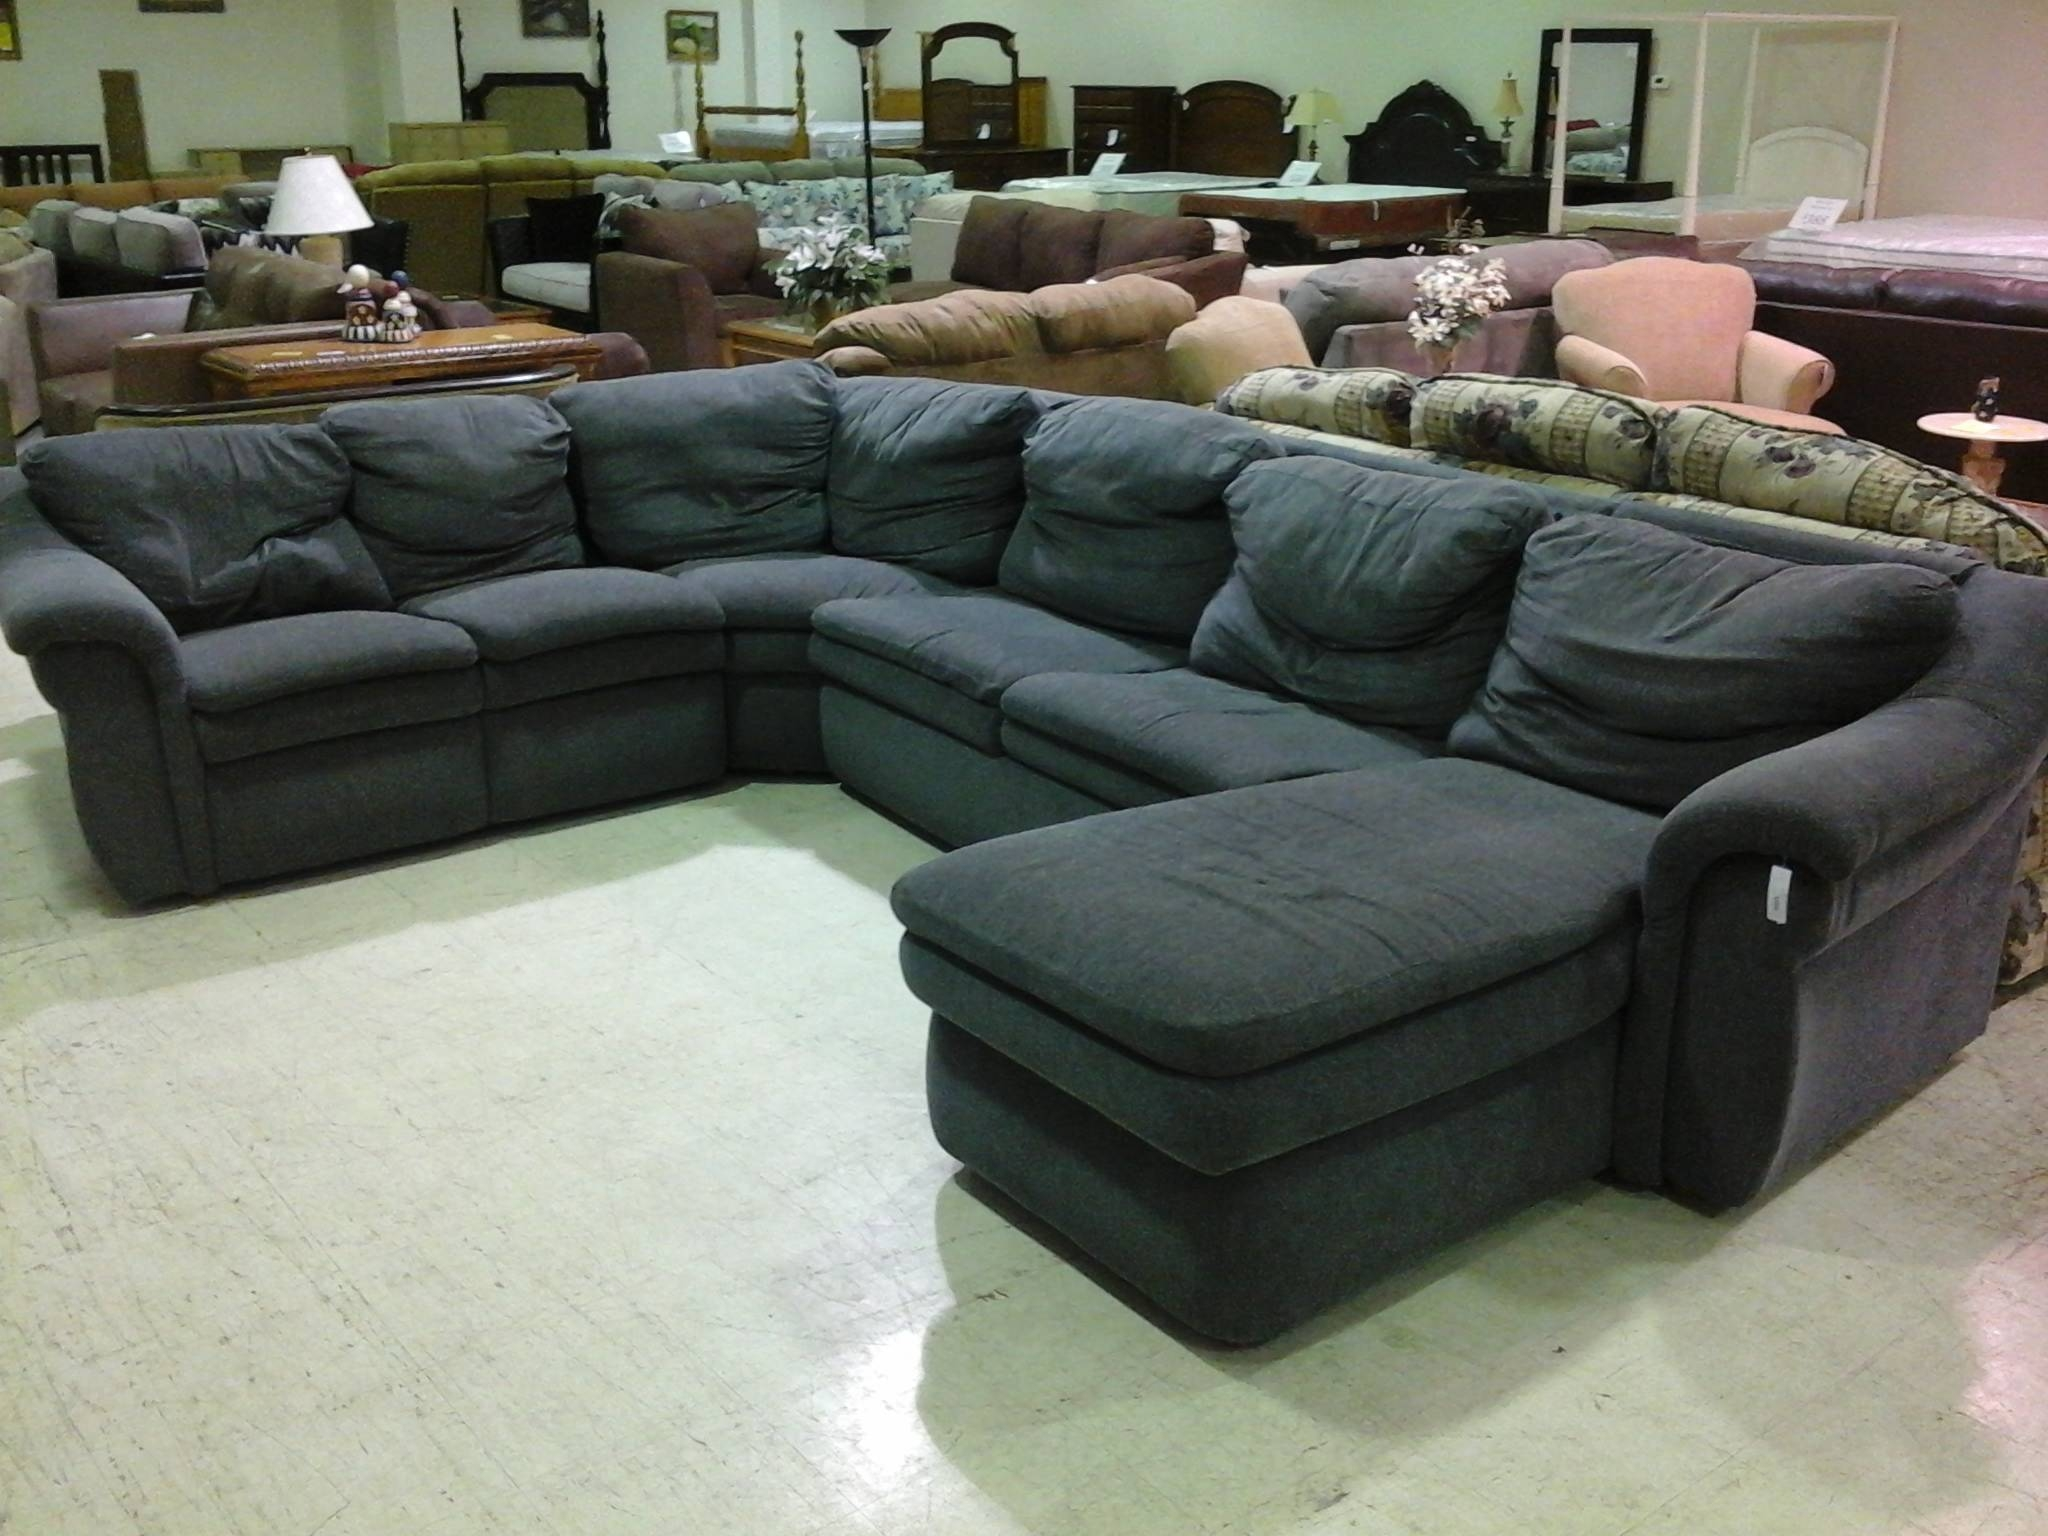 Sofa Chaise Lounge U203A Ashley Furniture Darcy. Slipcovers For with regard to Comfy Sectional Sofa (Image 25 of 30)